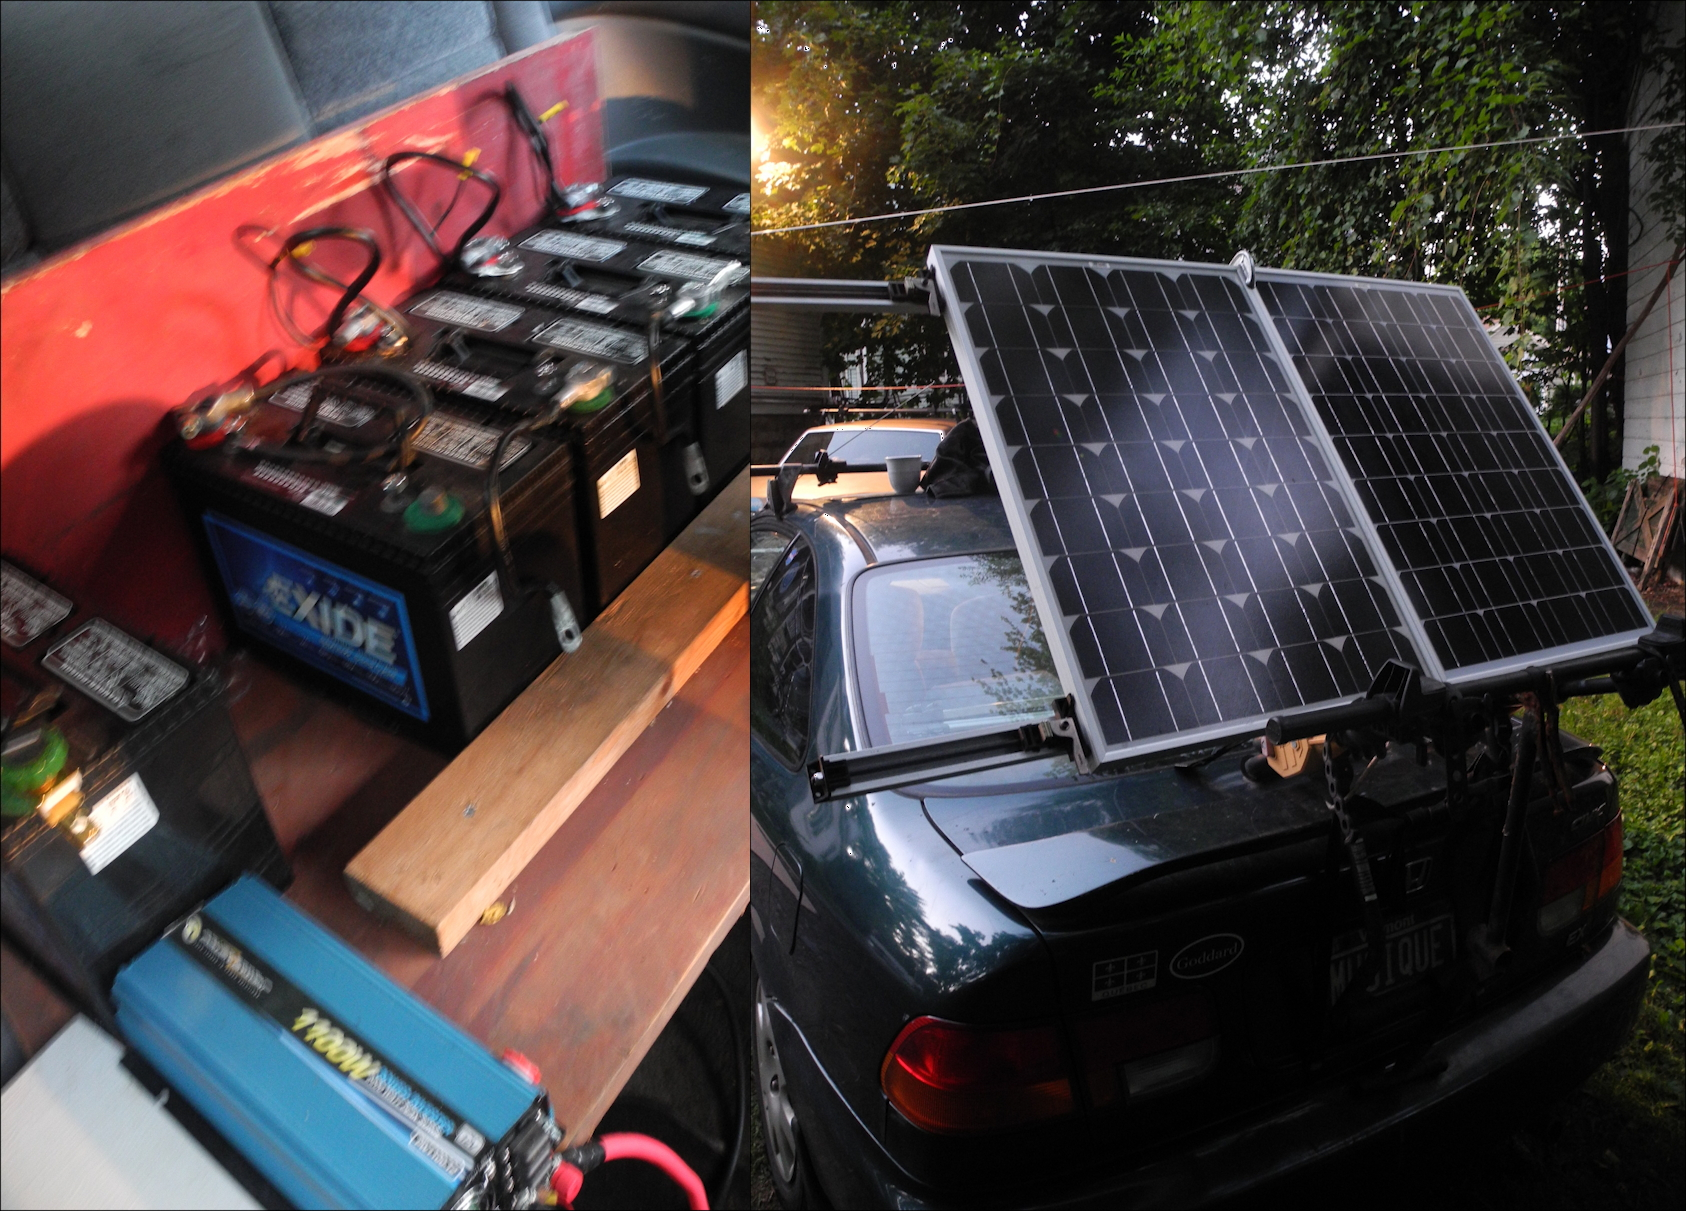 500 AmpHr battery bank with 250W panel bank, mounted on Honda Civic